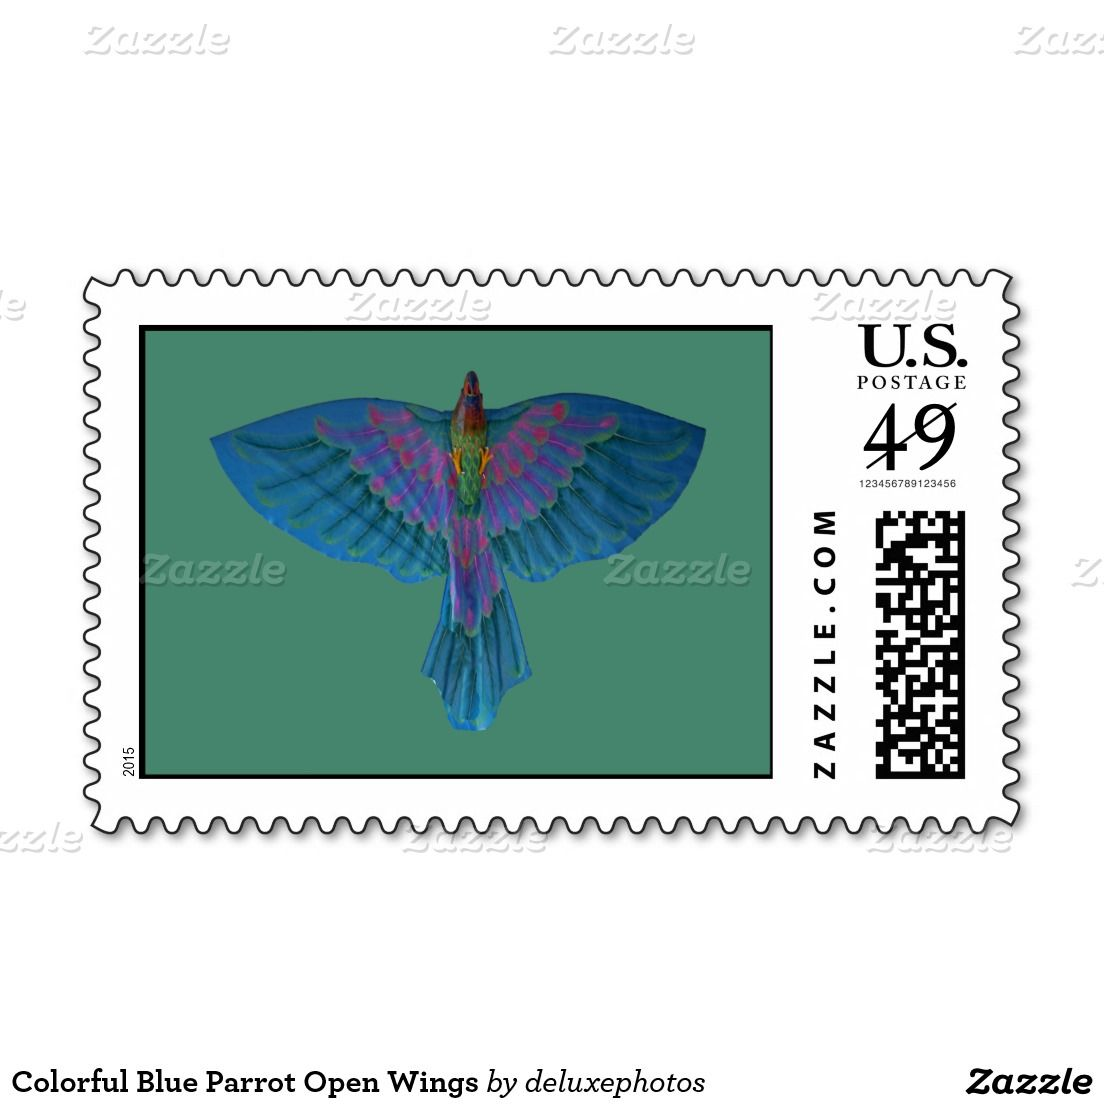 Colorful Blue Parrot Open Wings Stamp